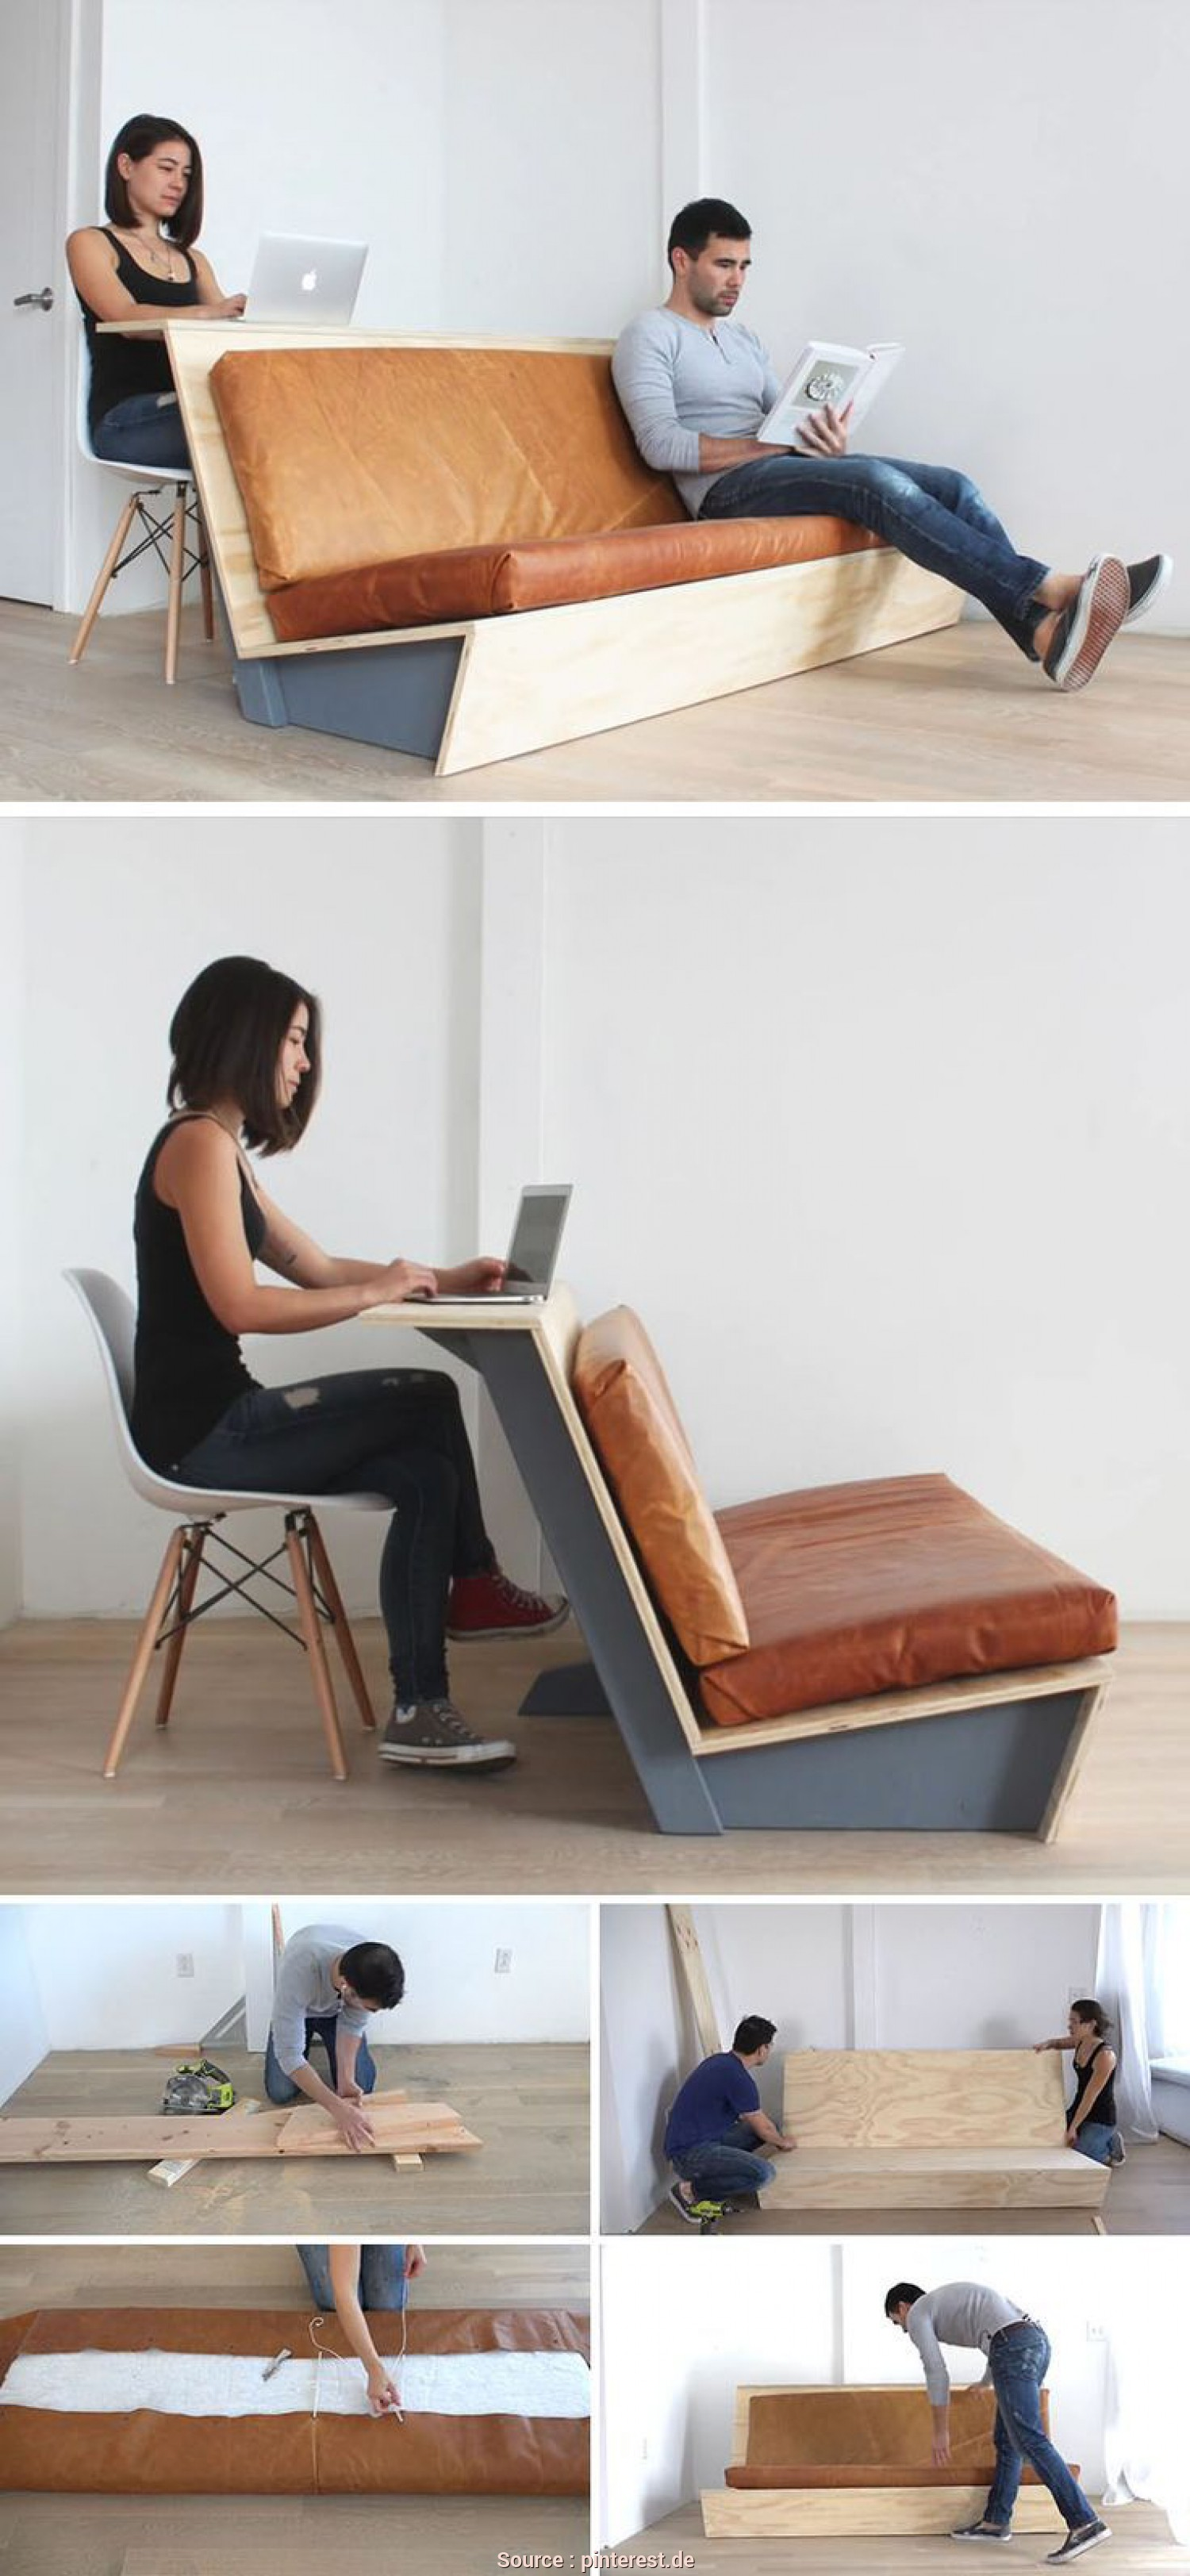 Divano, Da Te Paint Your Life, Sbalorditivo This Tutorial, A, Modern Couch Teaches, How To Create A Couch With A Wood Frame, Leather Cushions That Also Doubles As A Desk